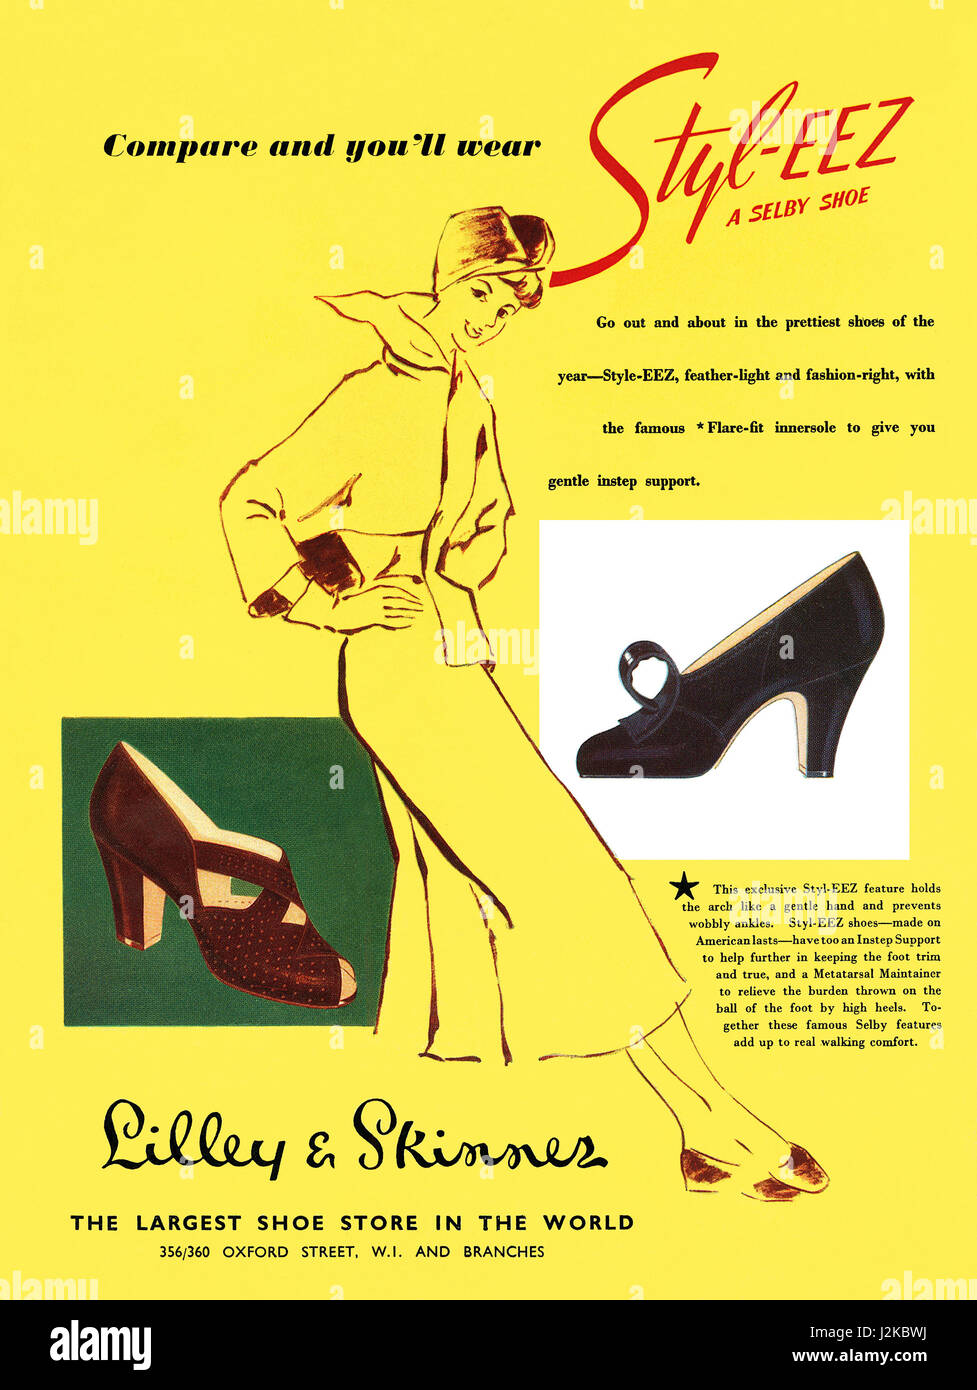 1950 British advertisement for Styl-Eez shoes by Selby, available at Lilley & Skinner shoe stores. - Stock Image